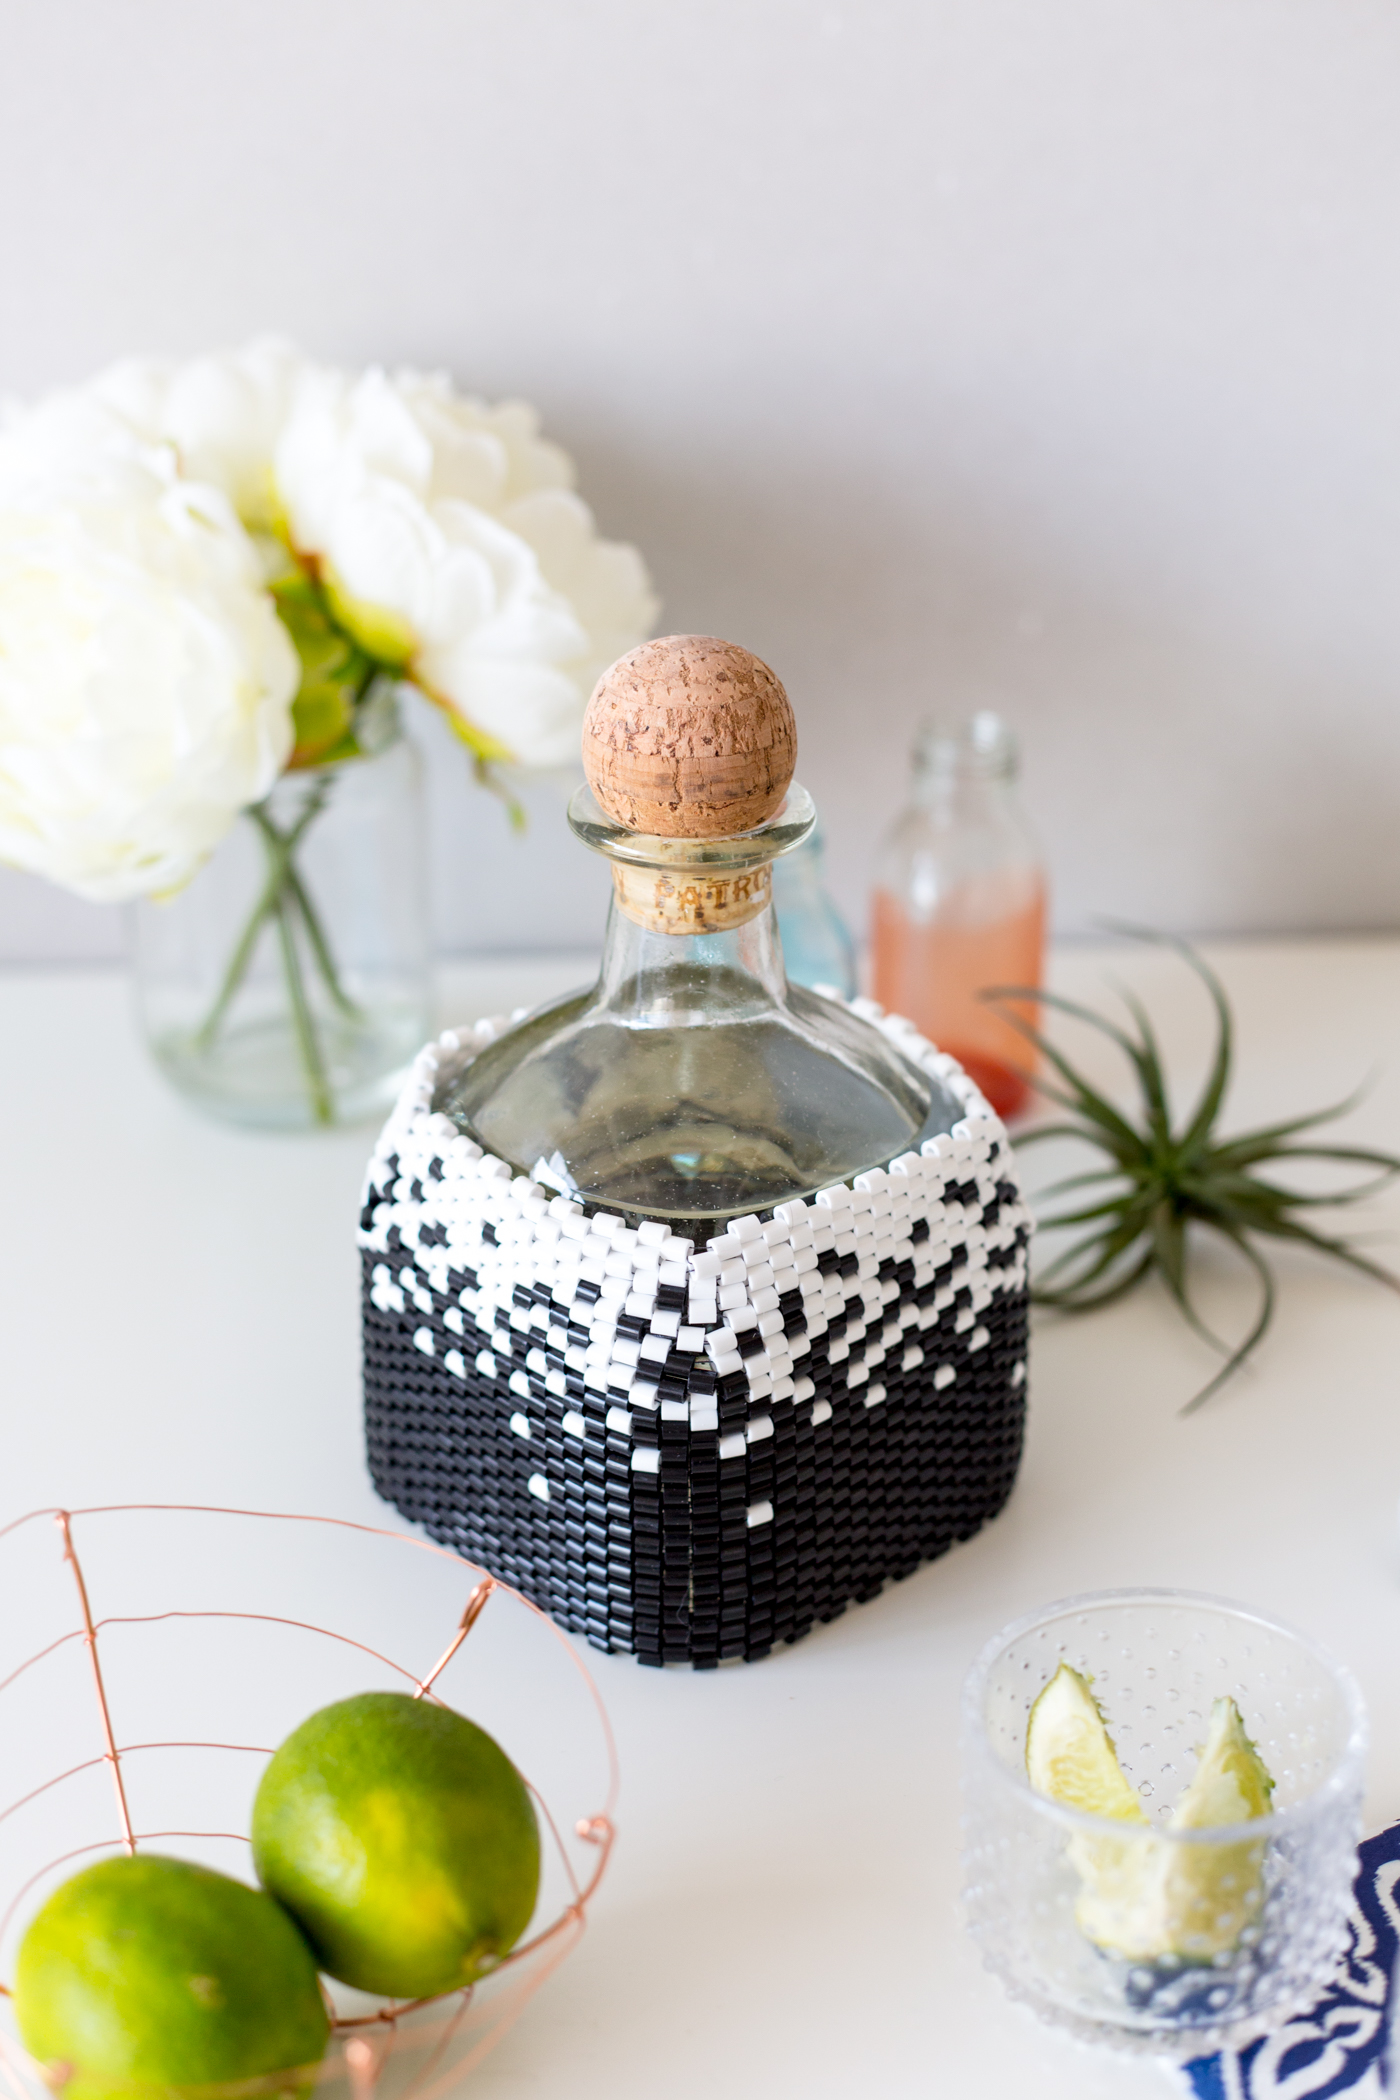 diy-beaded-bottle-cover-in-peyote-stitch-with-tutorial-fallfordiy-8